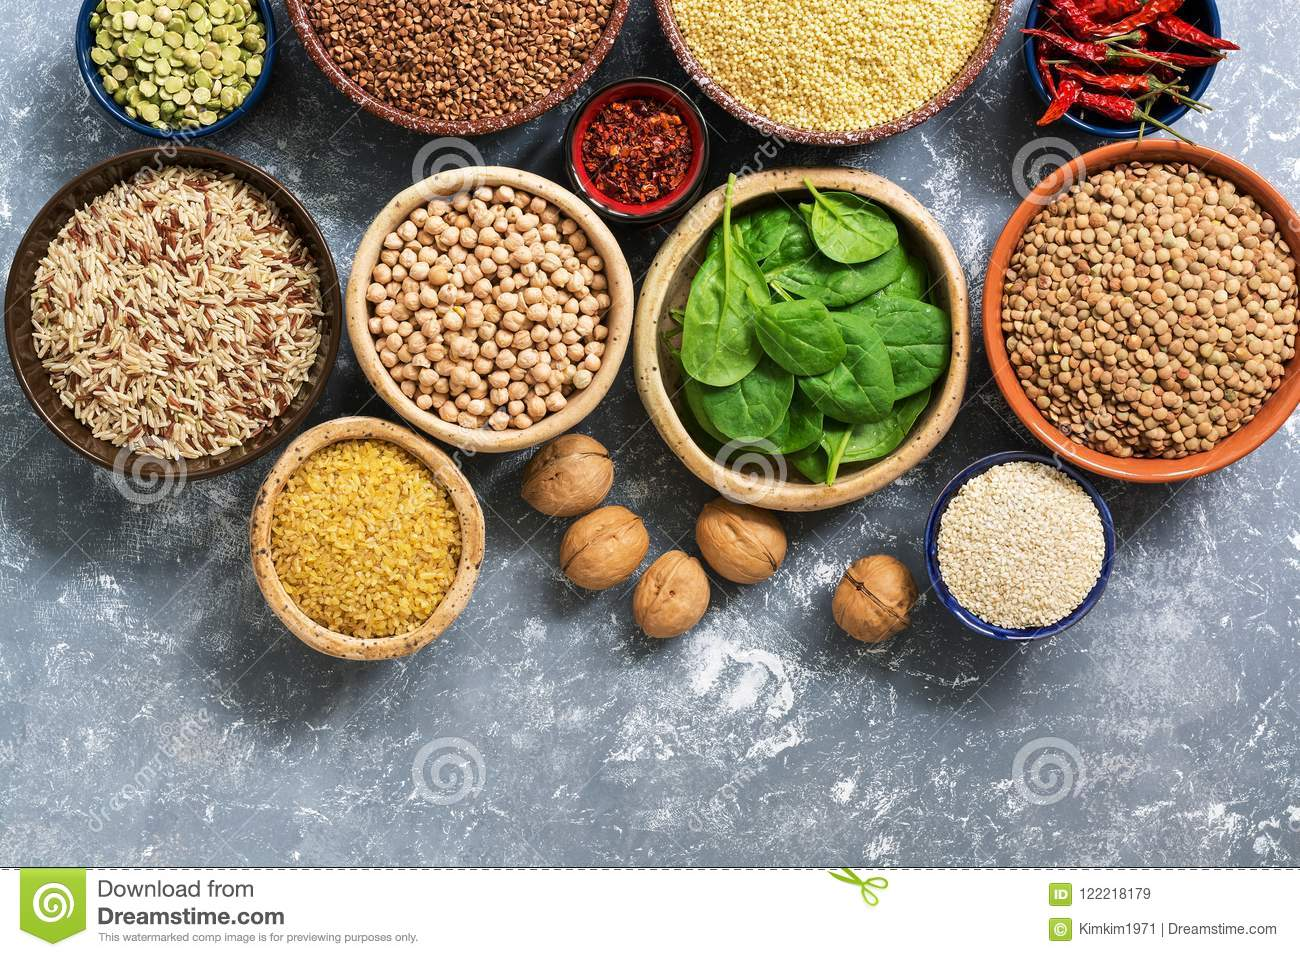 A source of vegetarian protein and vitamins , a variety of cereals,beans,herbs,nuts. Chickpeas, rice,buckwheat,bulgur,lentils, pea